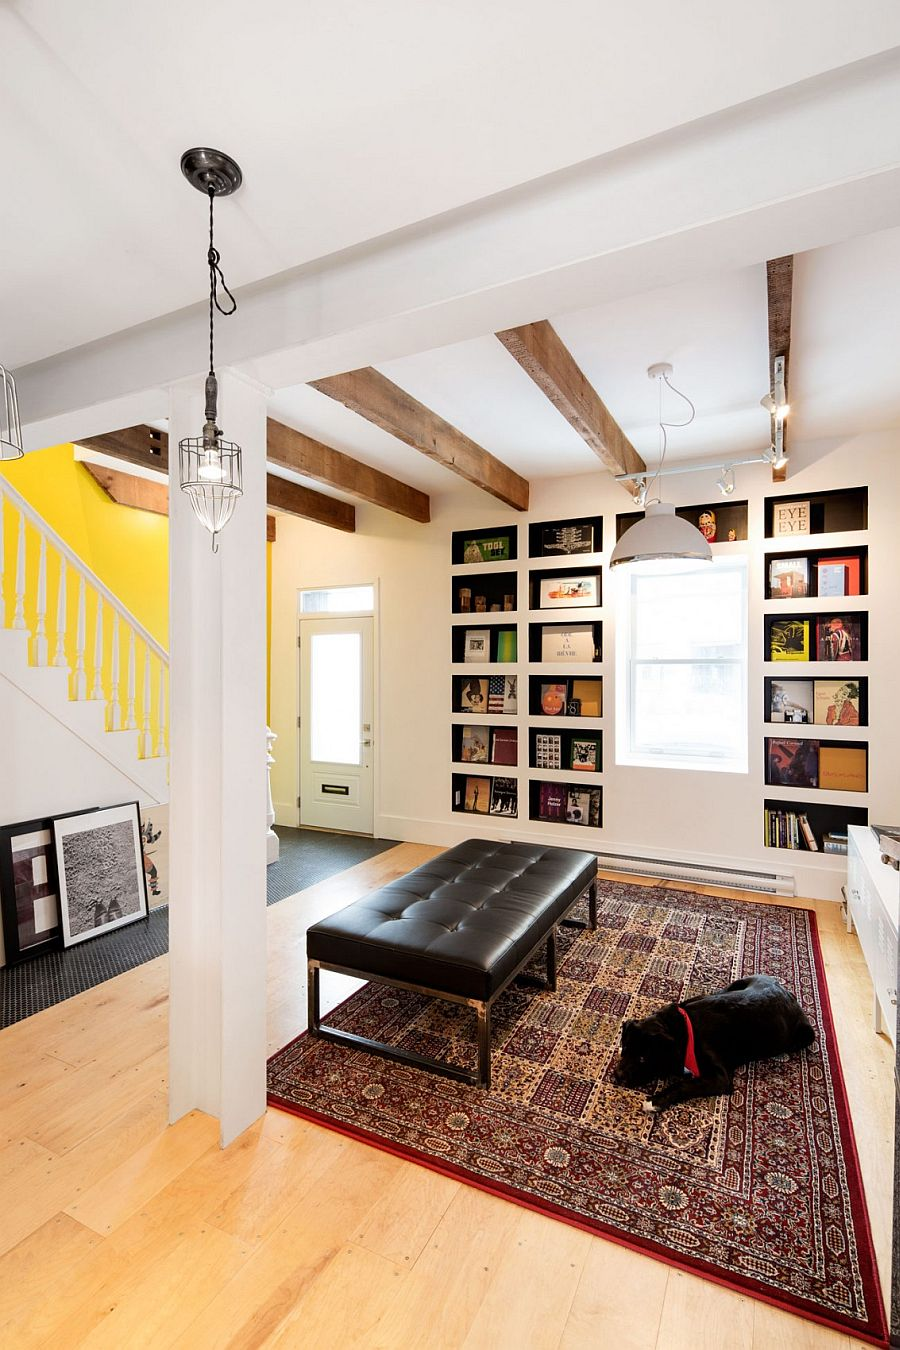 Exposed wooden beams, bookshelves and art work give the interior a distinct character